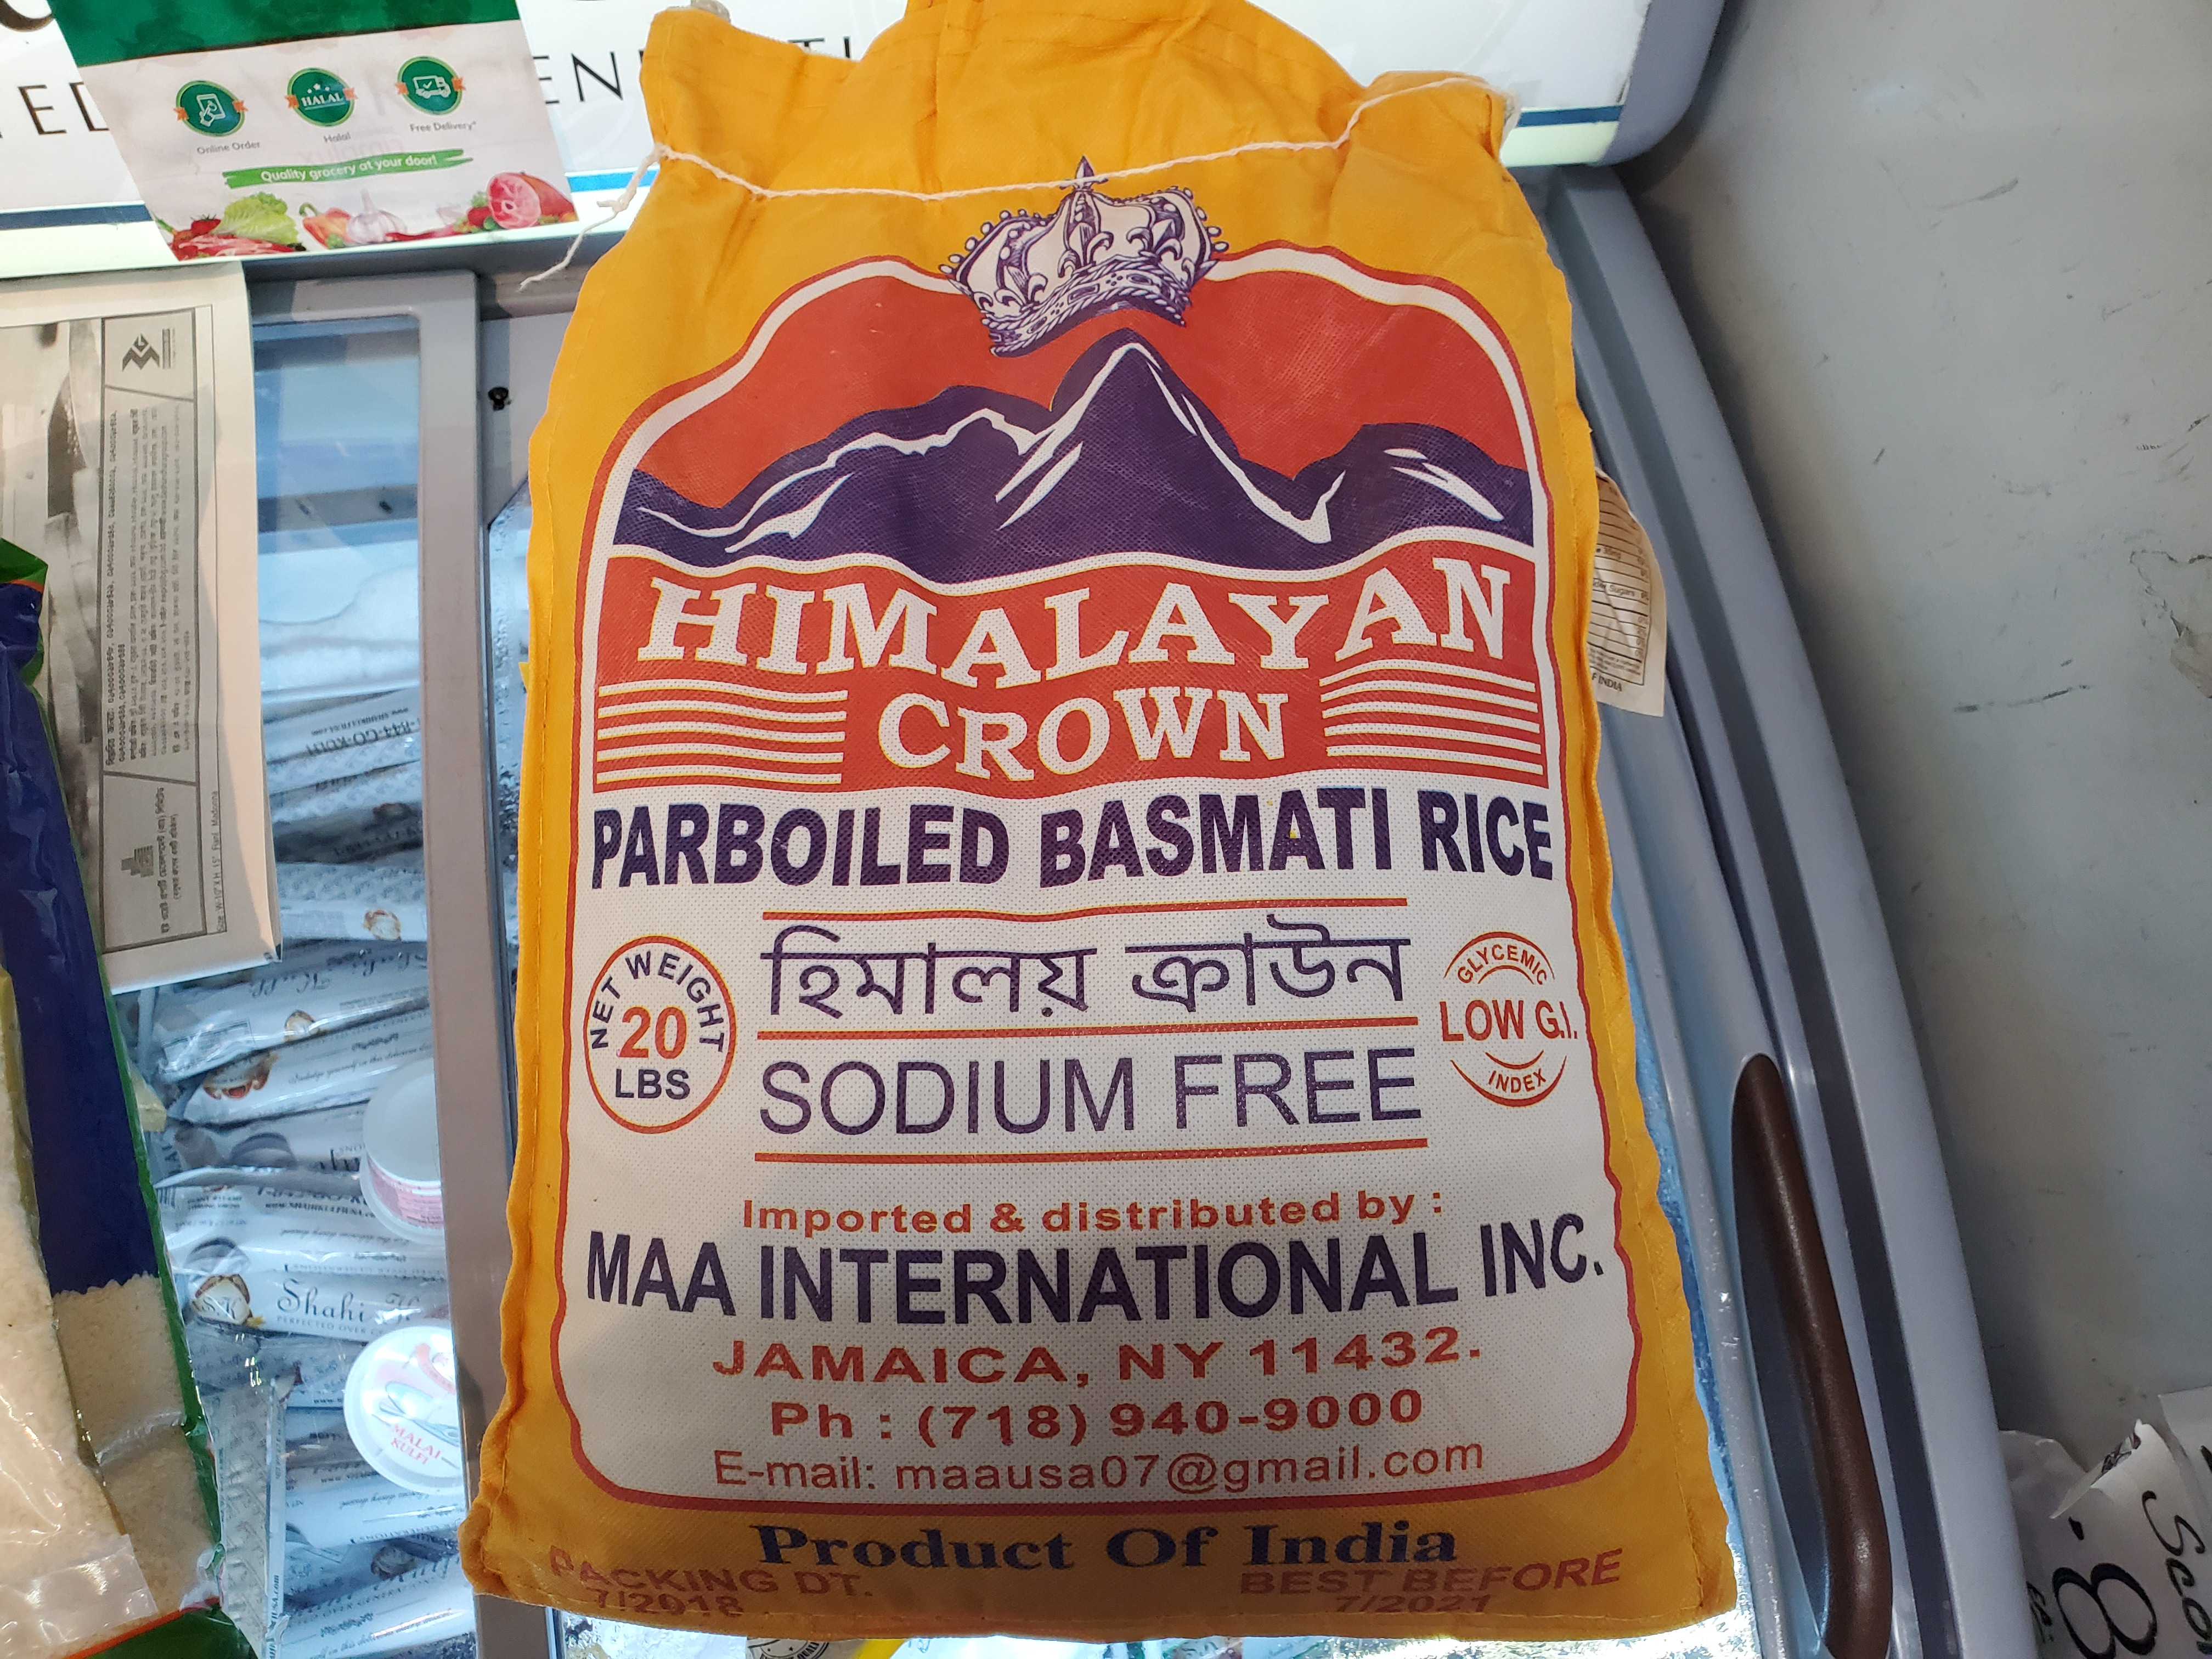 Himalayan Crown Basmati Rice 20lb